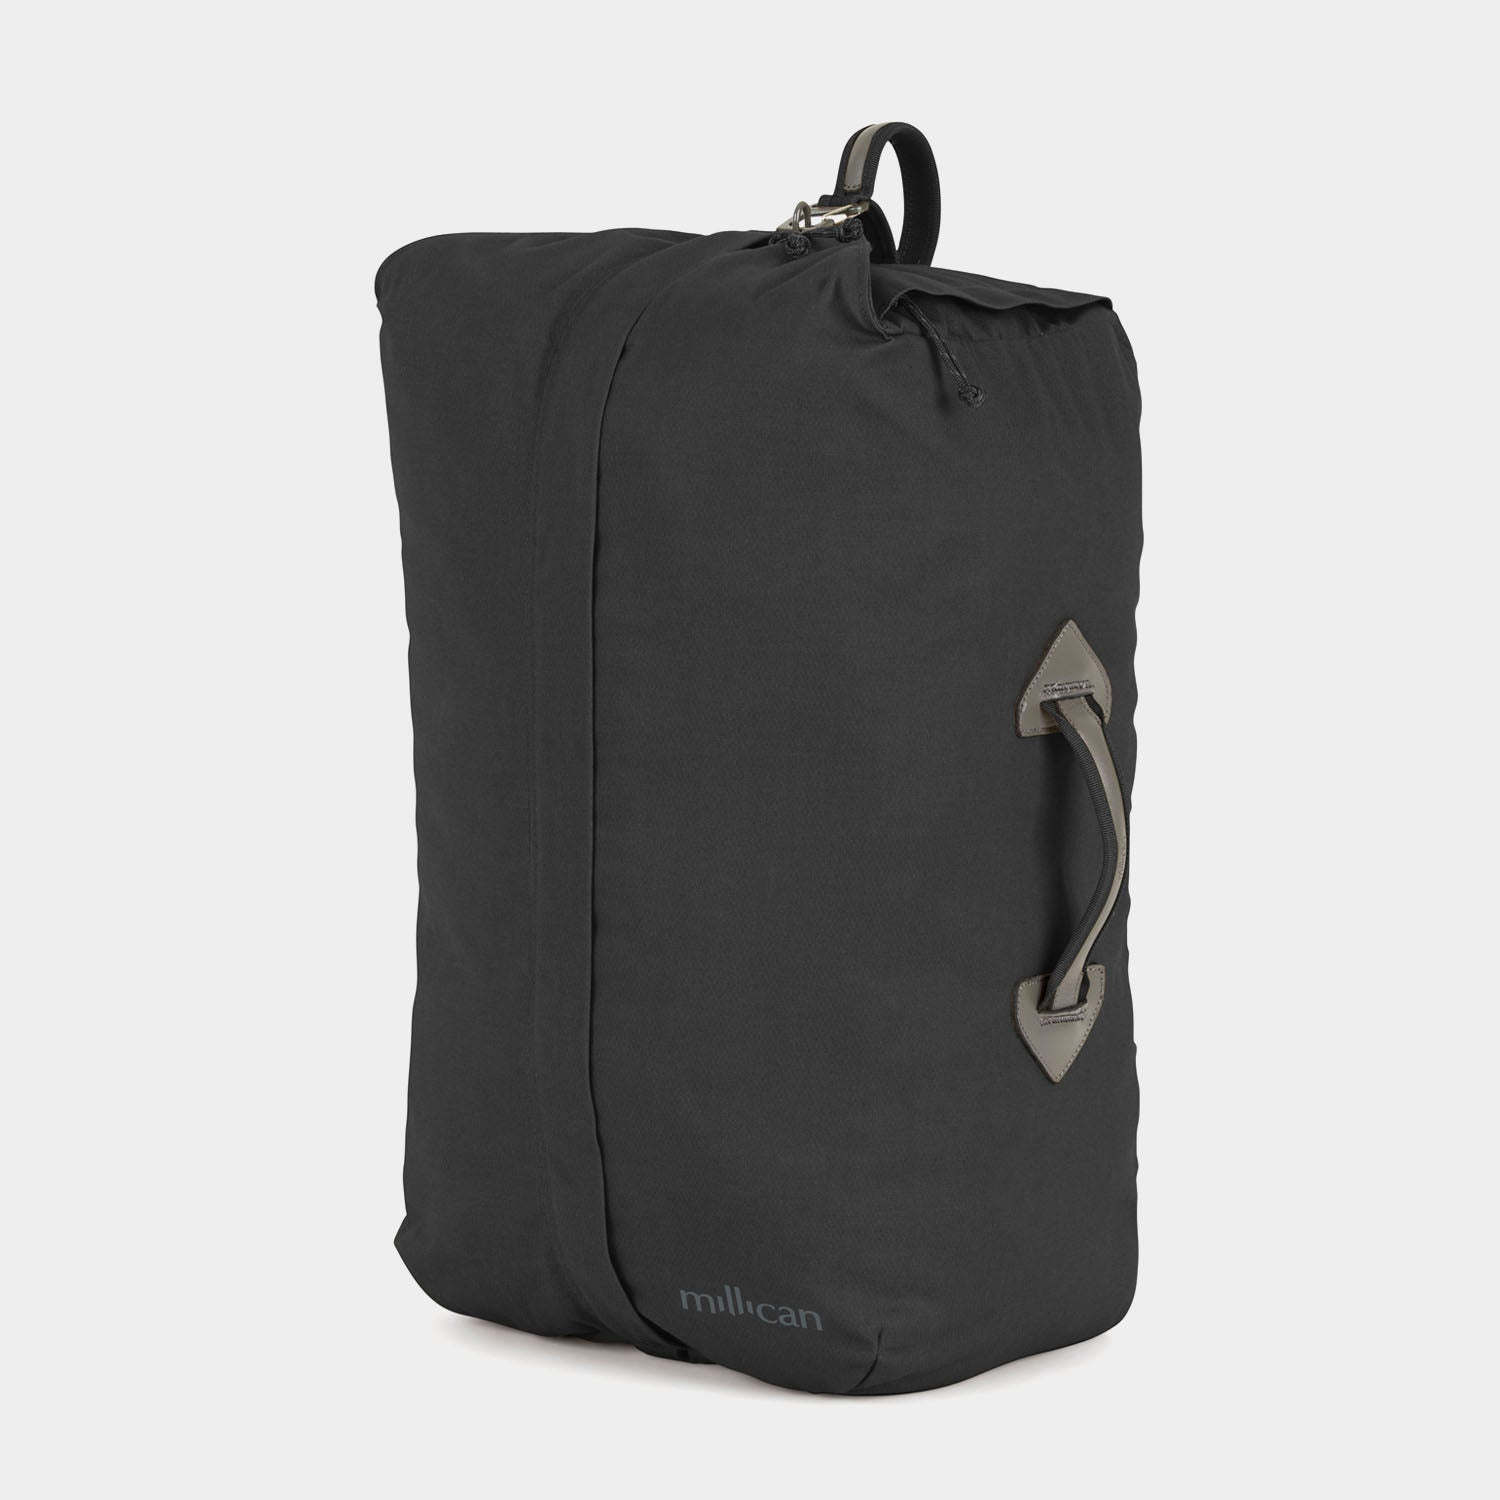 Millican Miles The Duffle Bag 40L Graphite